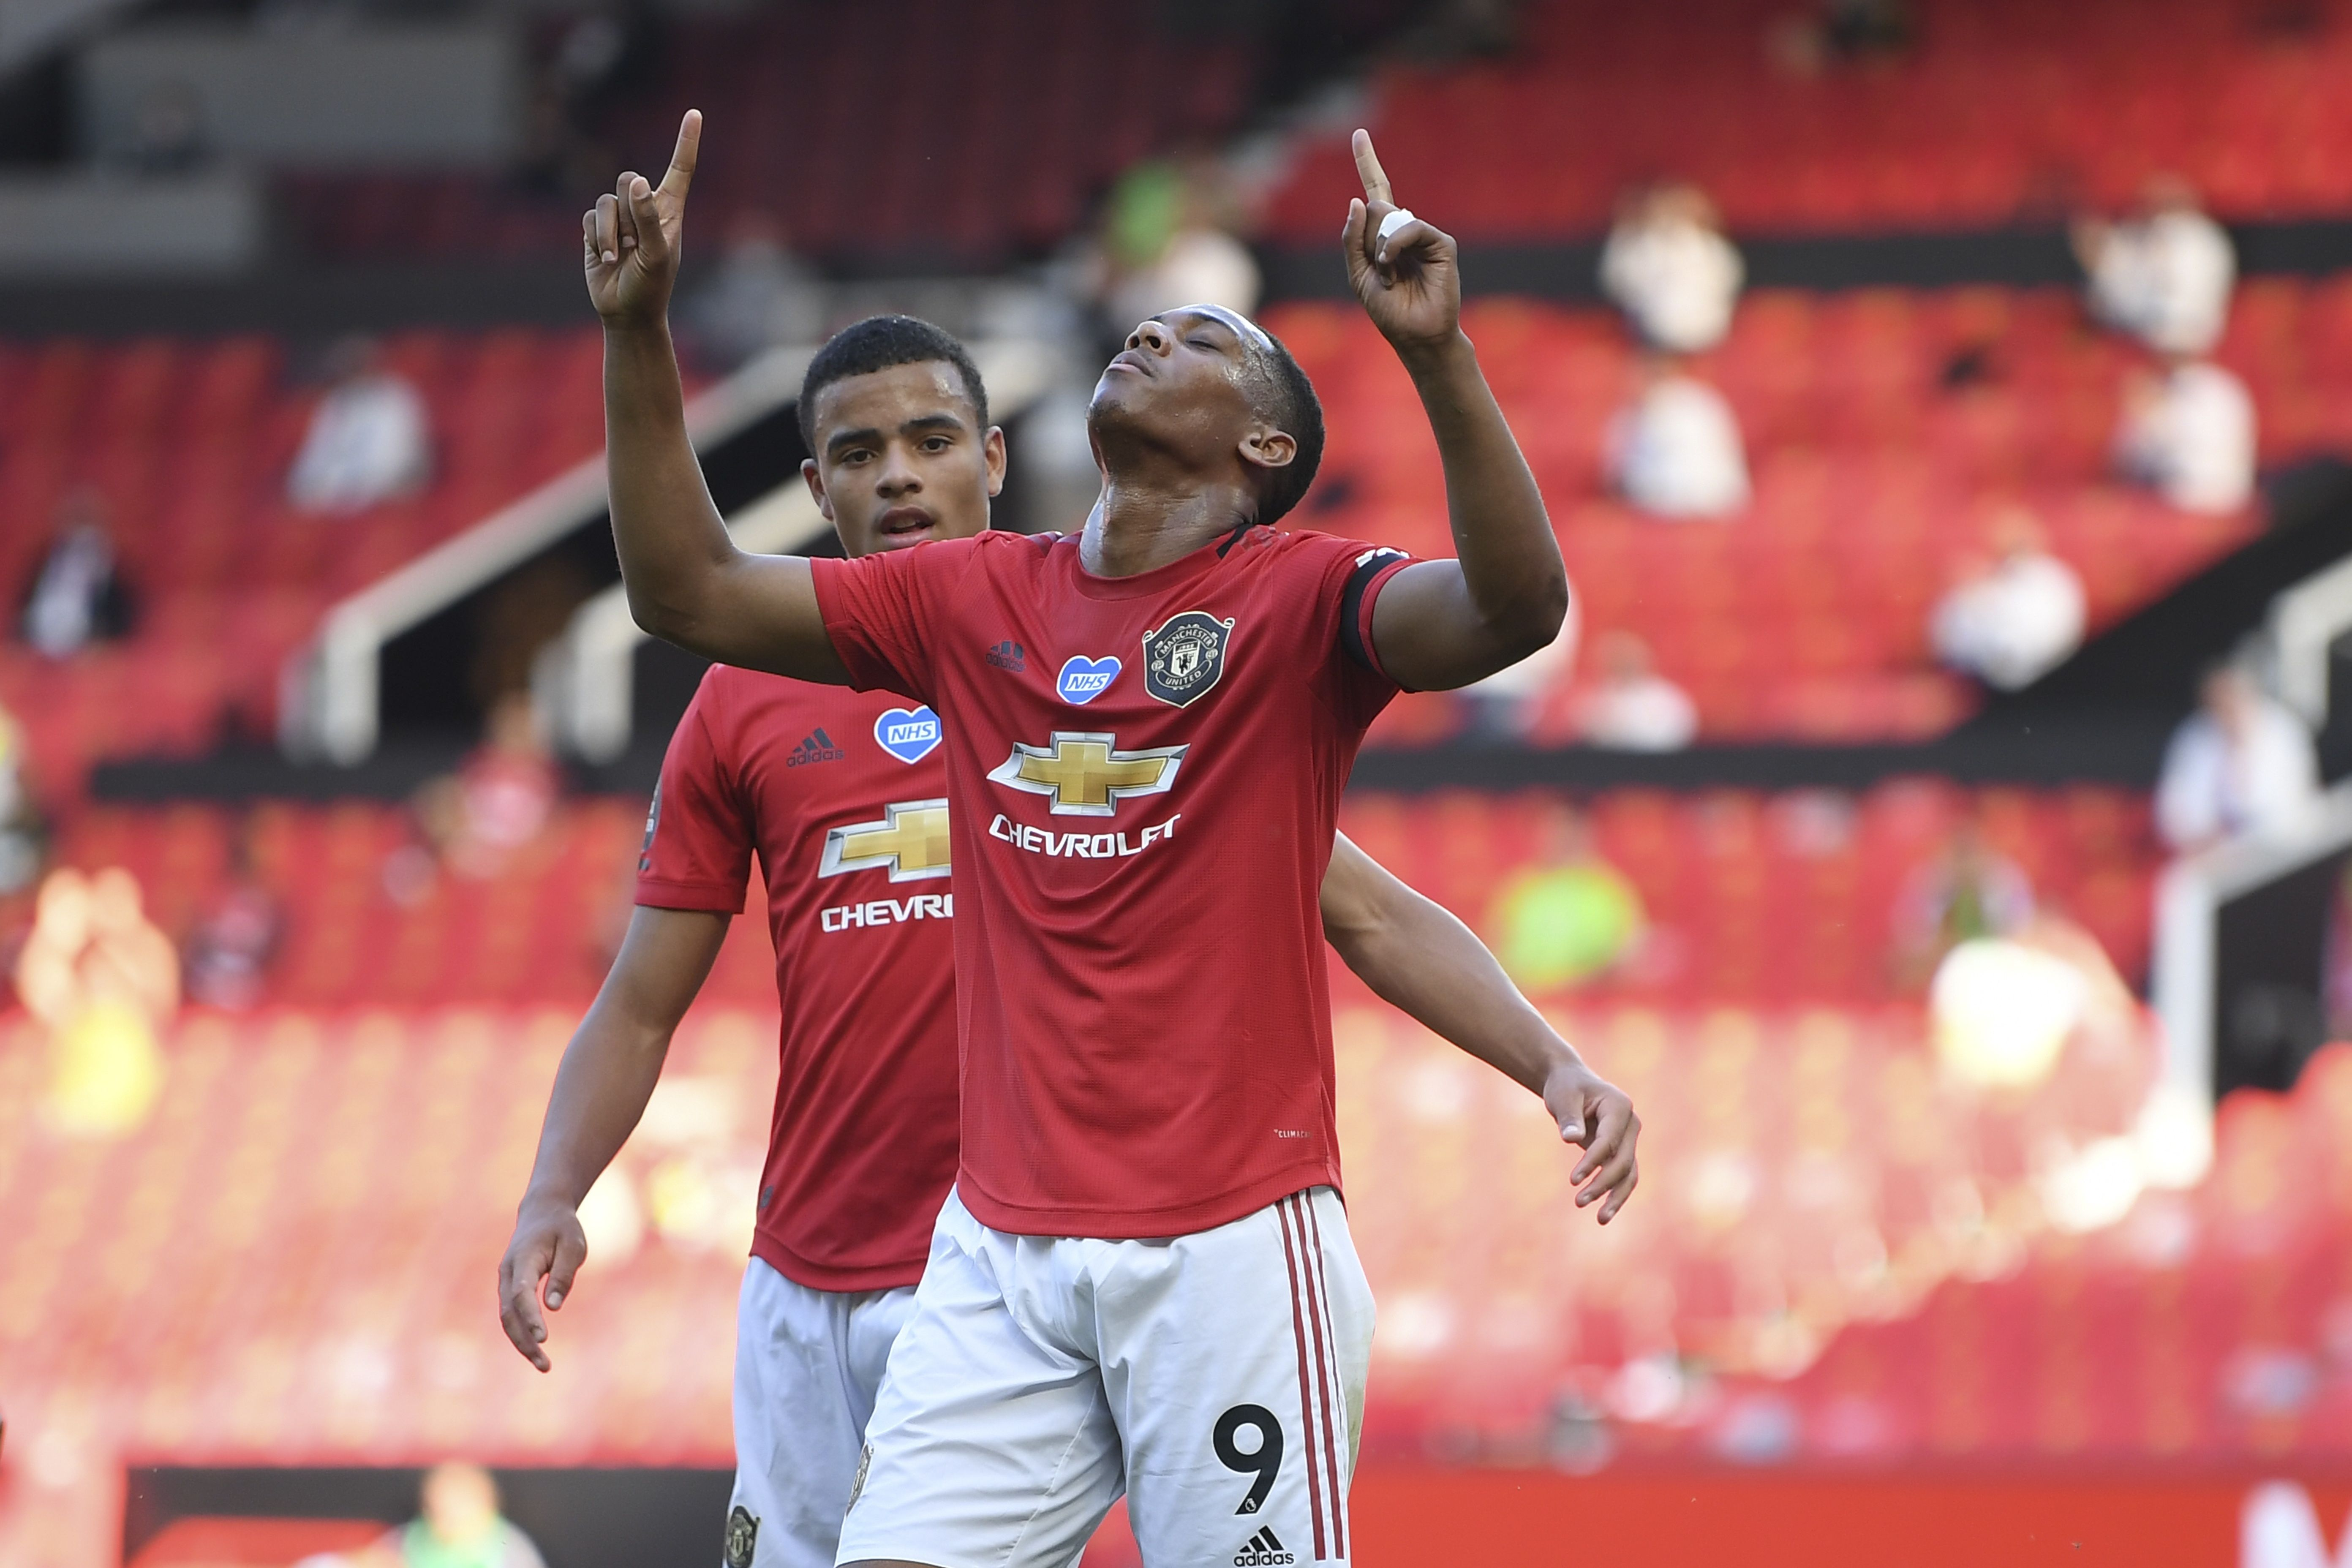 Manchester United Vs West Ham Live Stream Start Time Tv Channel How To Watch Premier League 2020 Wed July 22 Masslive Com